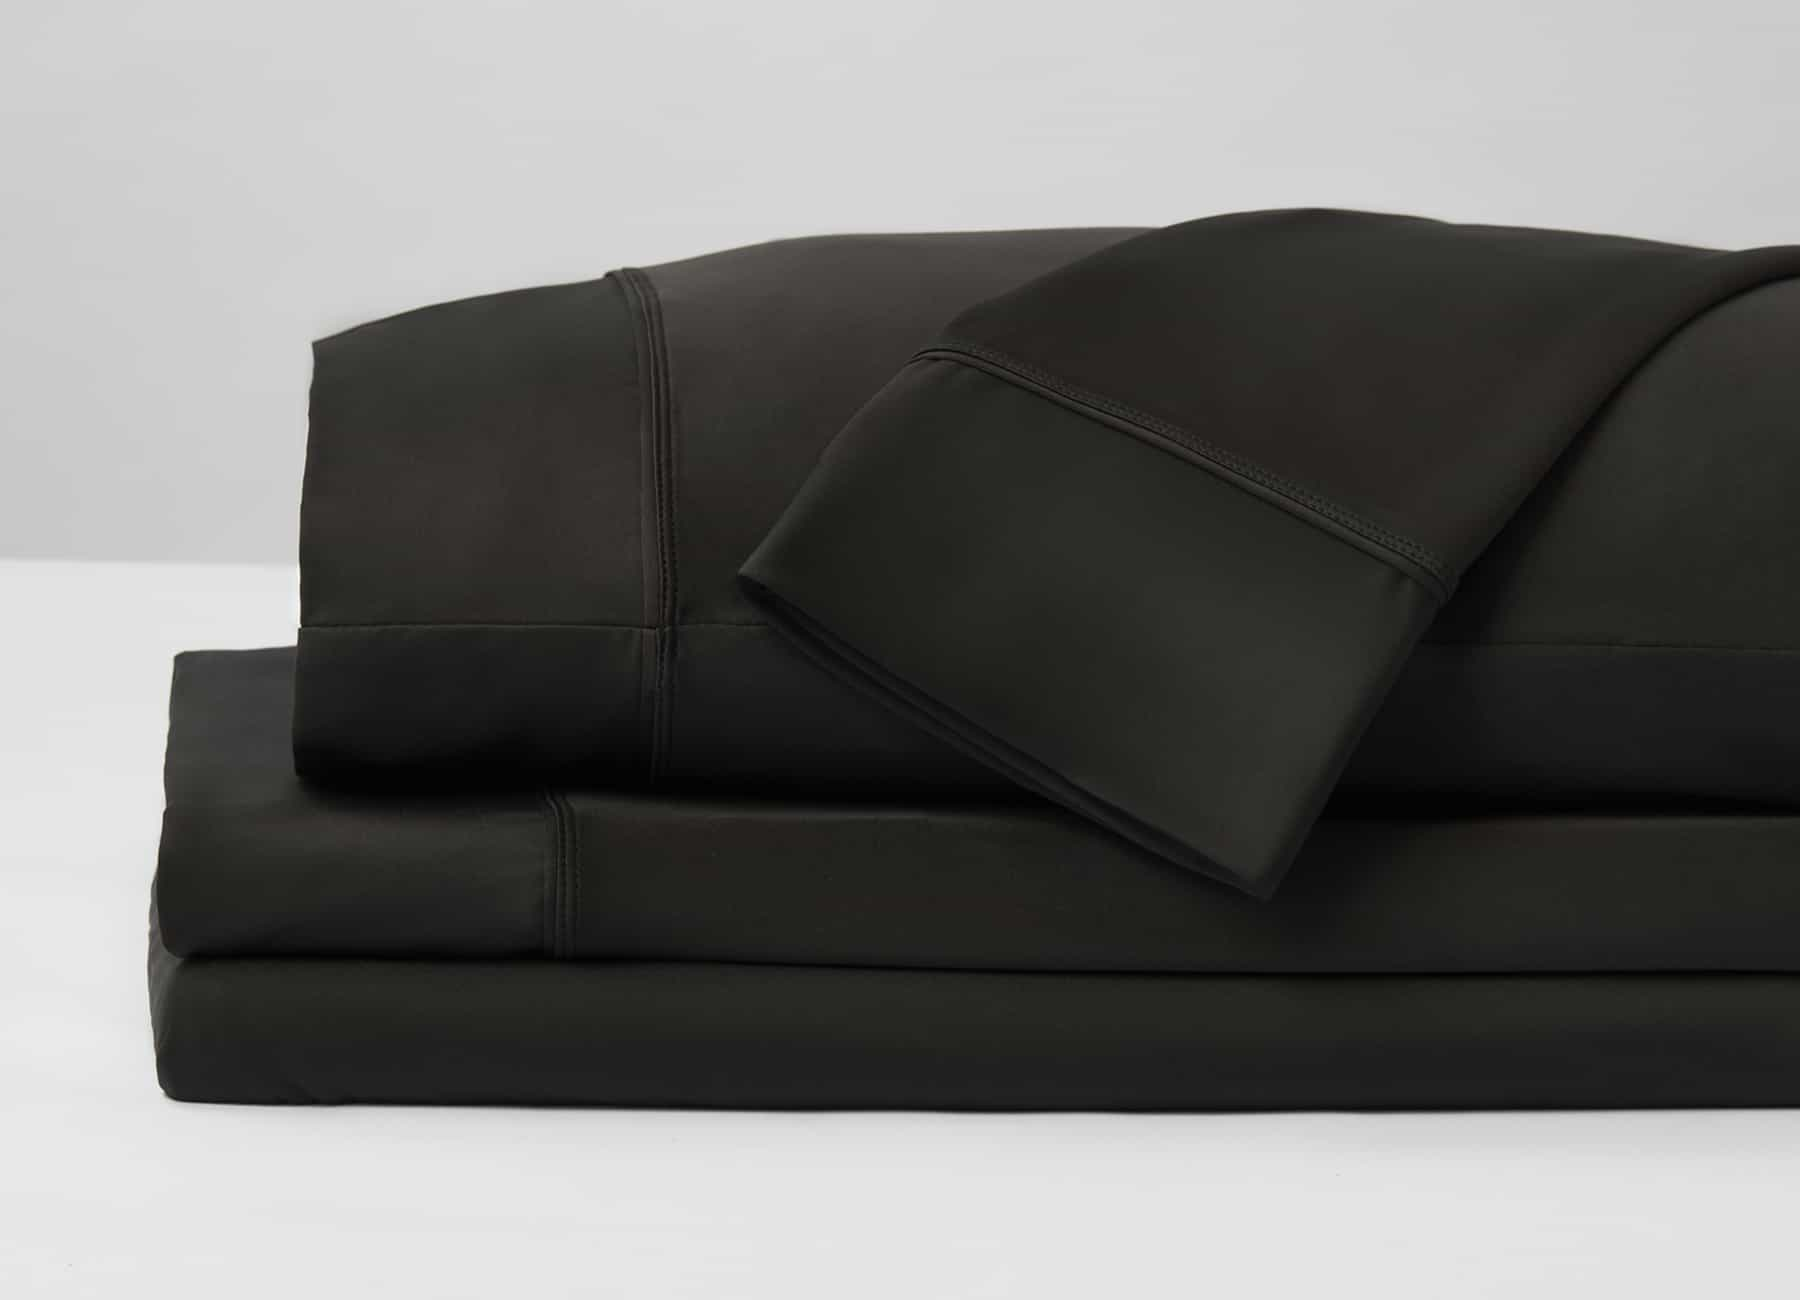 Original Performance Sheet Set Image Shown Folded and Stacked in Black #choose-your-color_black